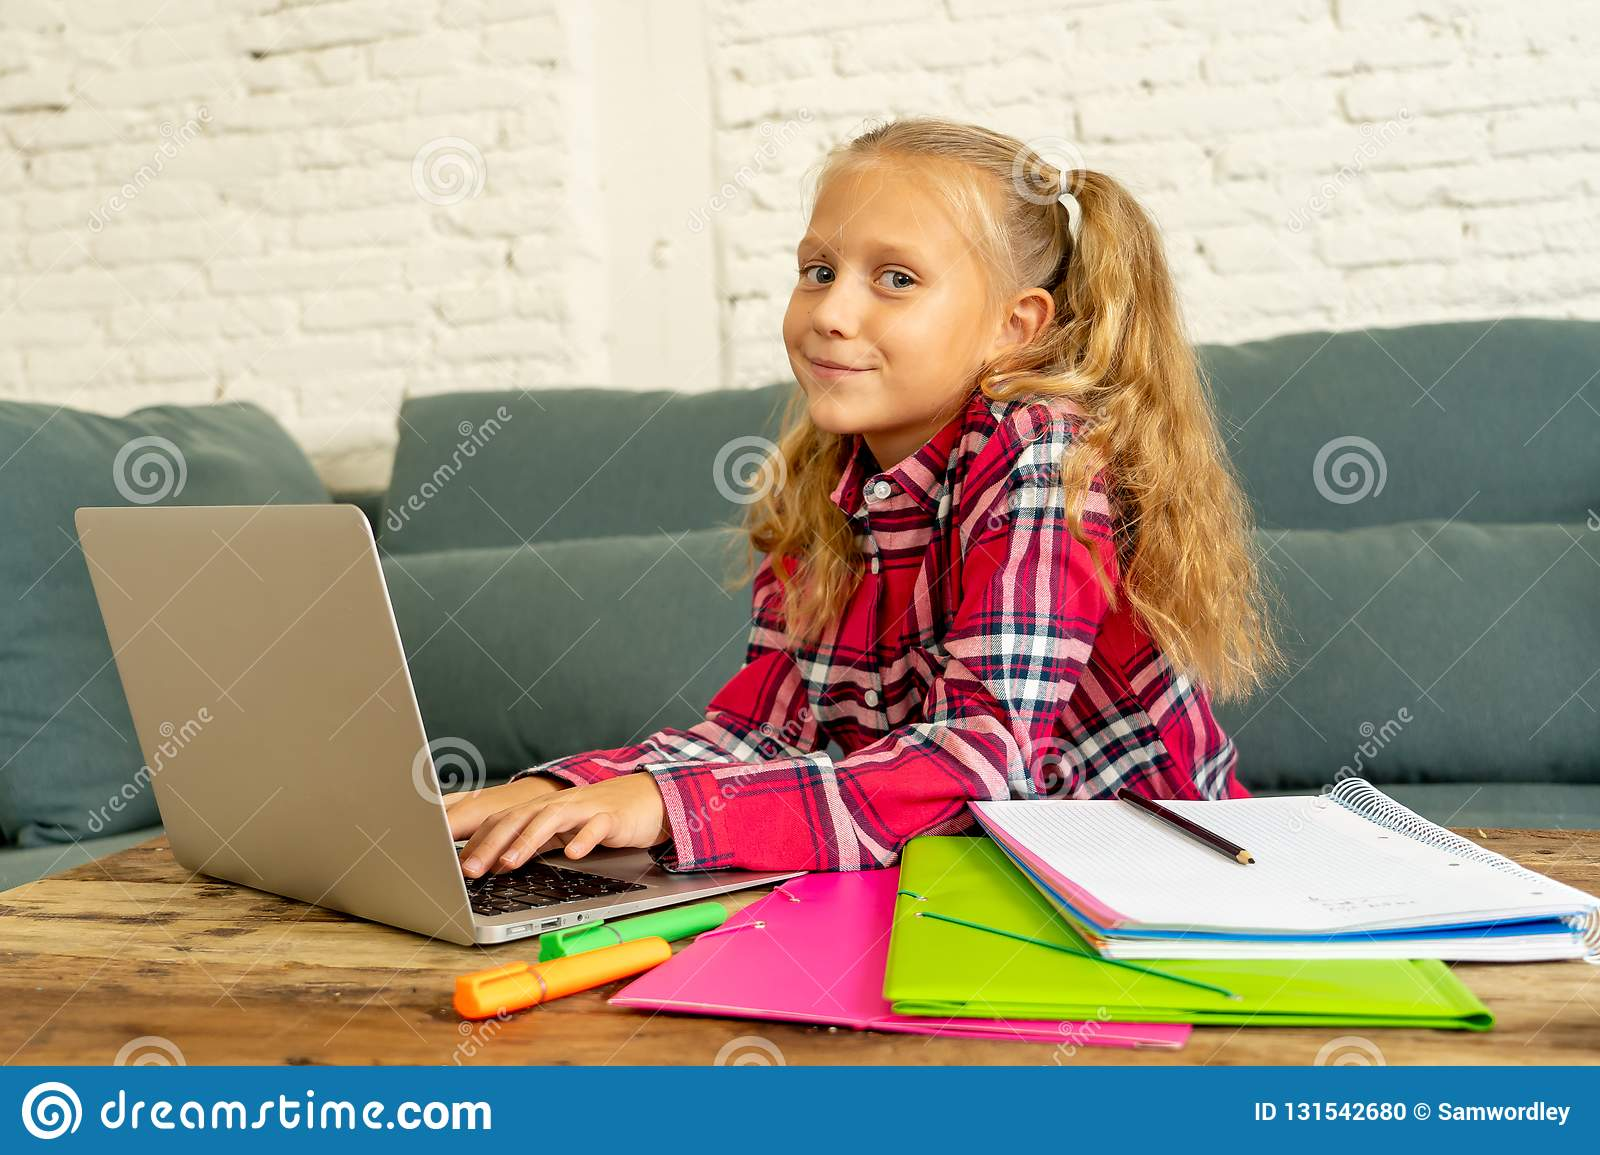 Cute caucasian cheerful elementary student feeling happy while doing homework and studying on her laptop in living room at home in